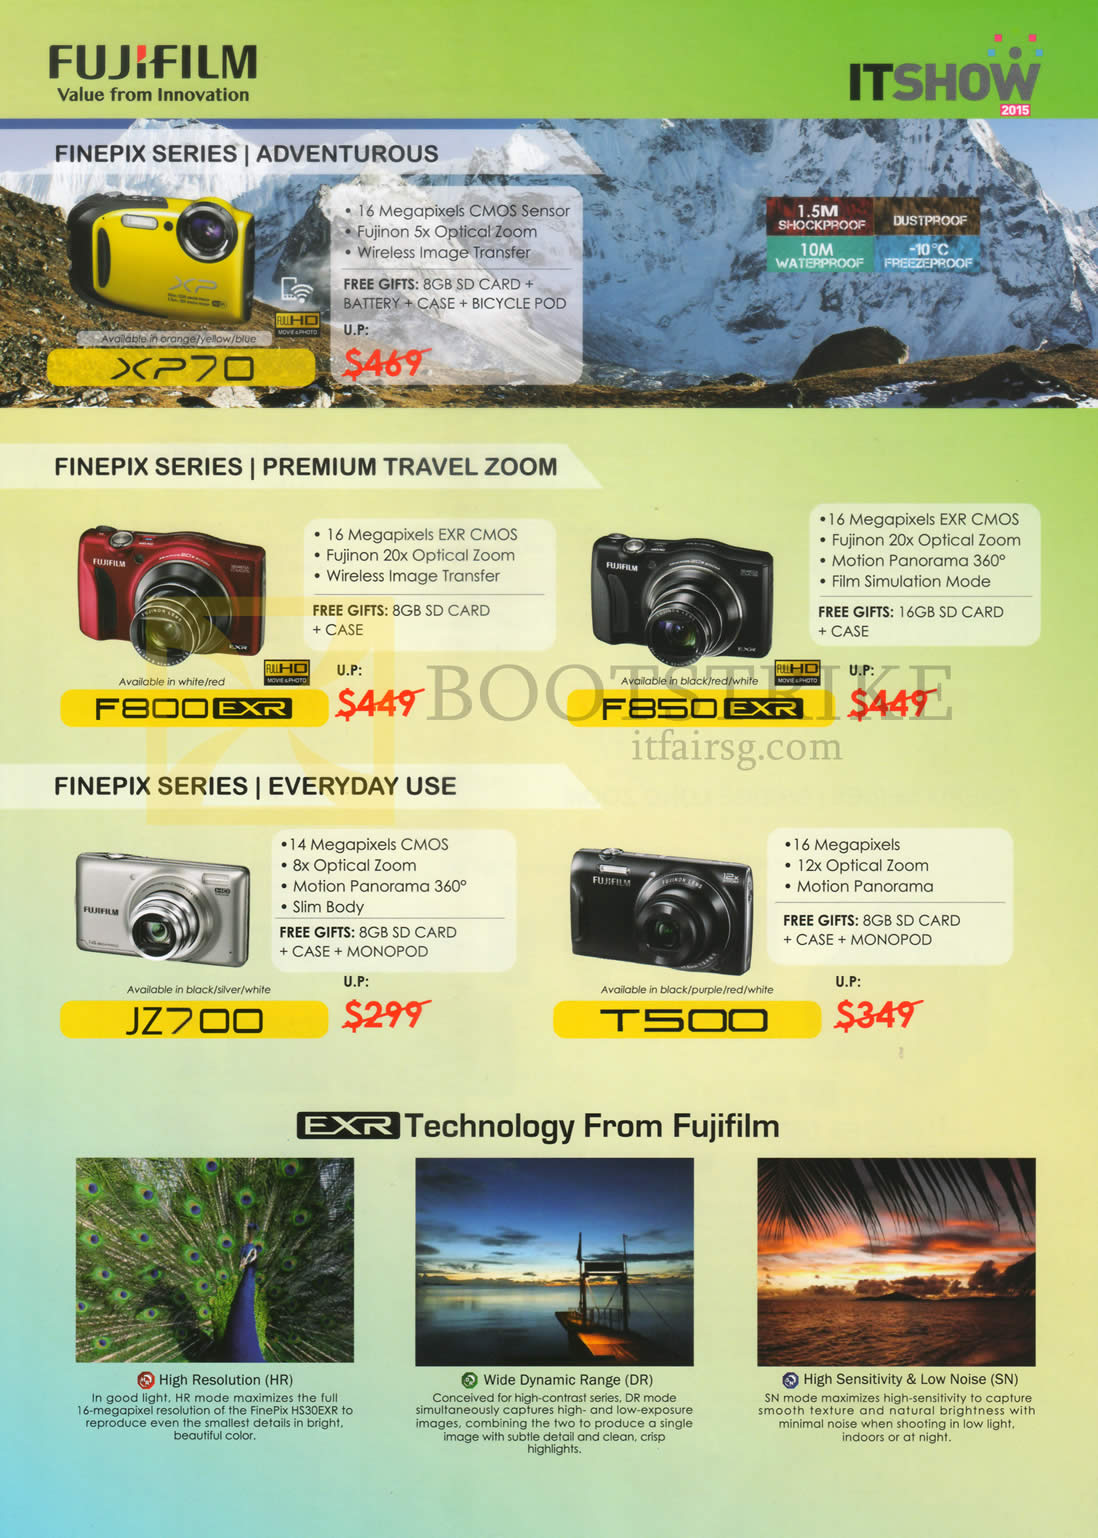 IT SHOW 2015 price list image brochure of Fujifilm (No Prices) Digital Cameras Finepix F800. F850, JZ700, T500